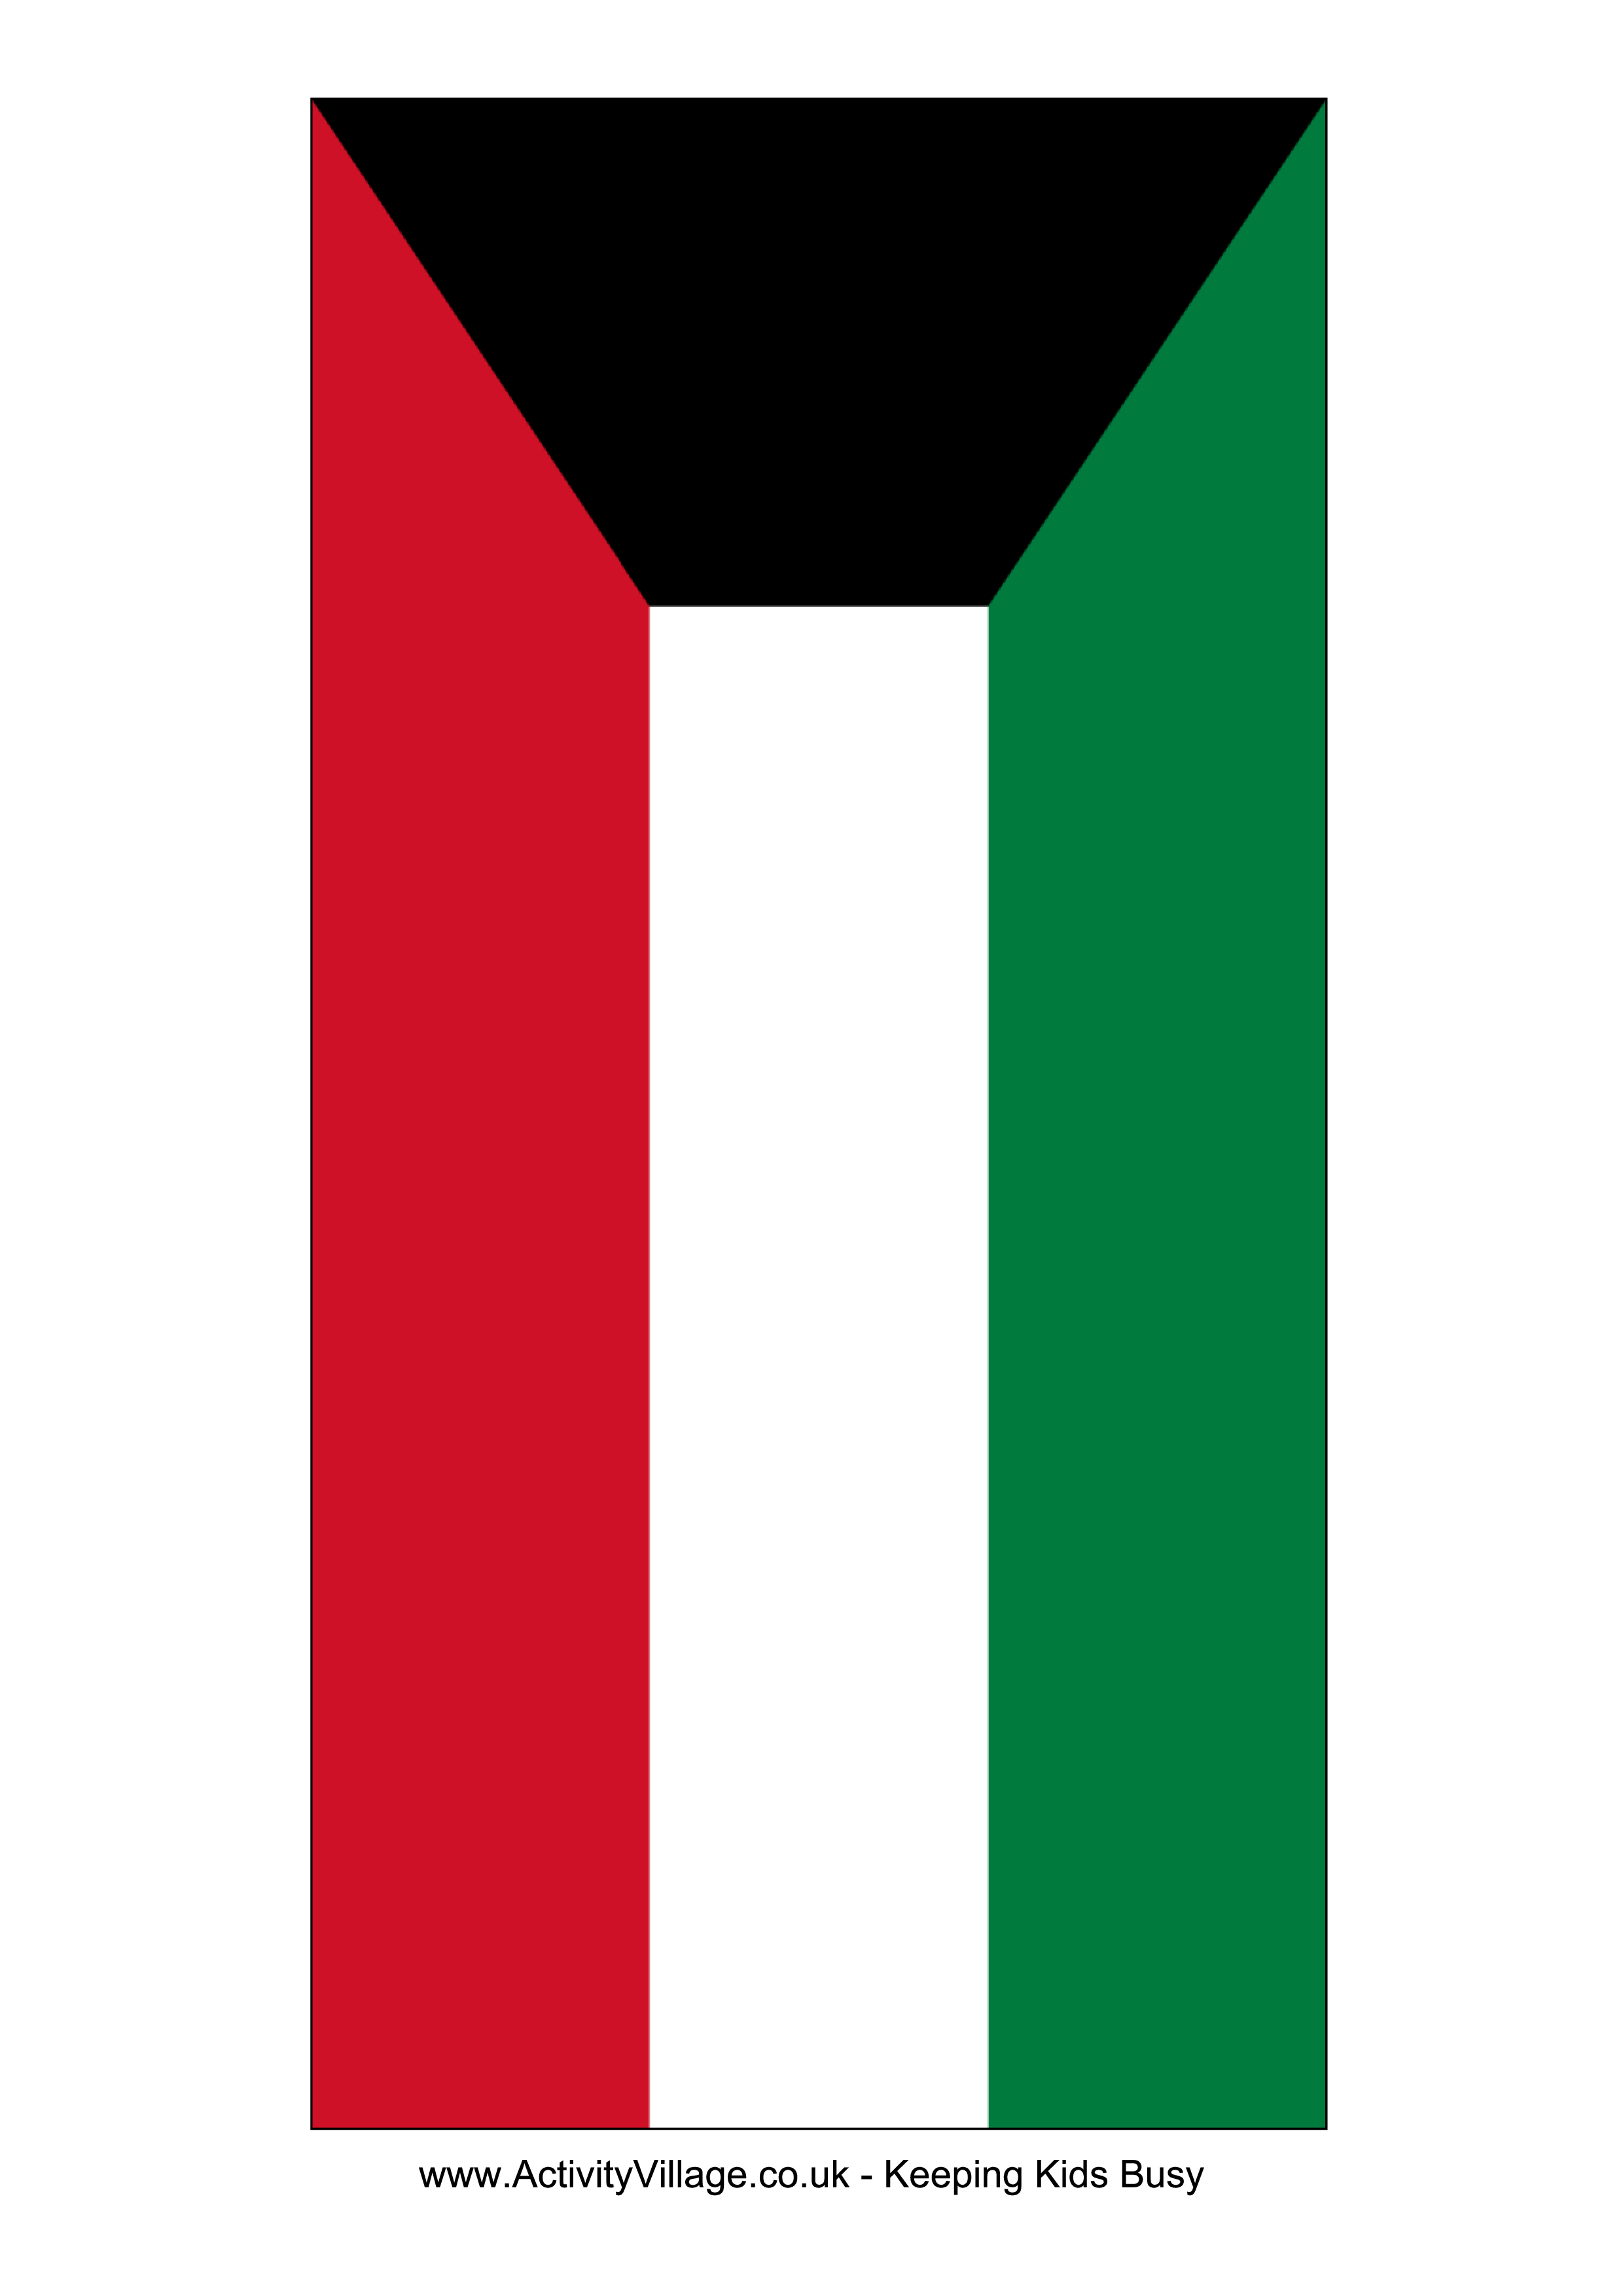 Kuwait flag free printable kuwait flag templates pinterest kuwait flag free printable kuwait flag toneelgroepblik Image collections